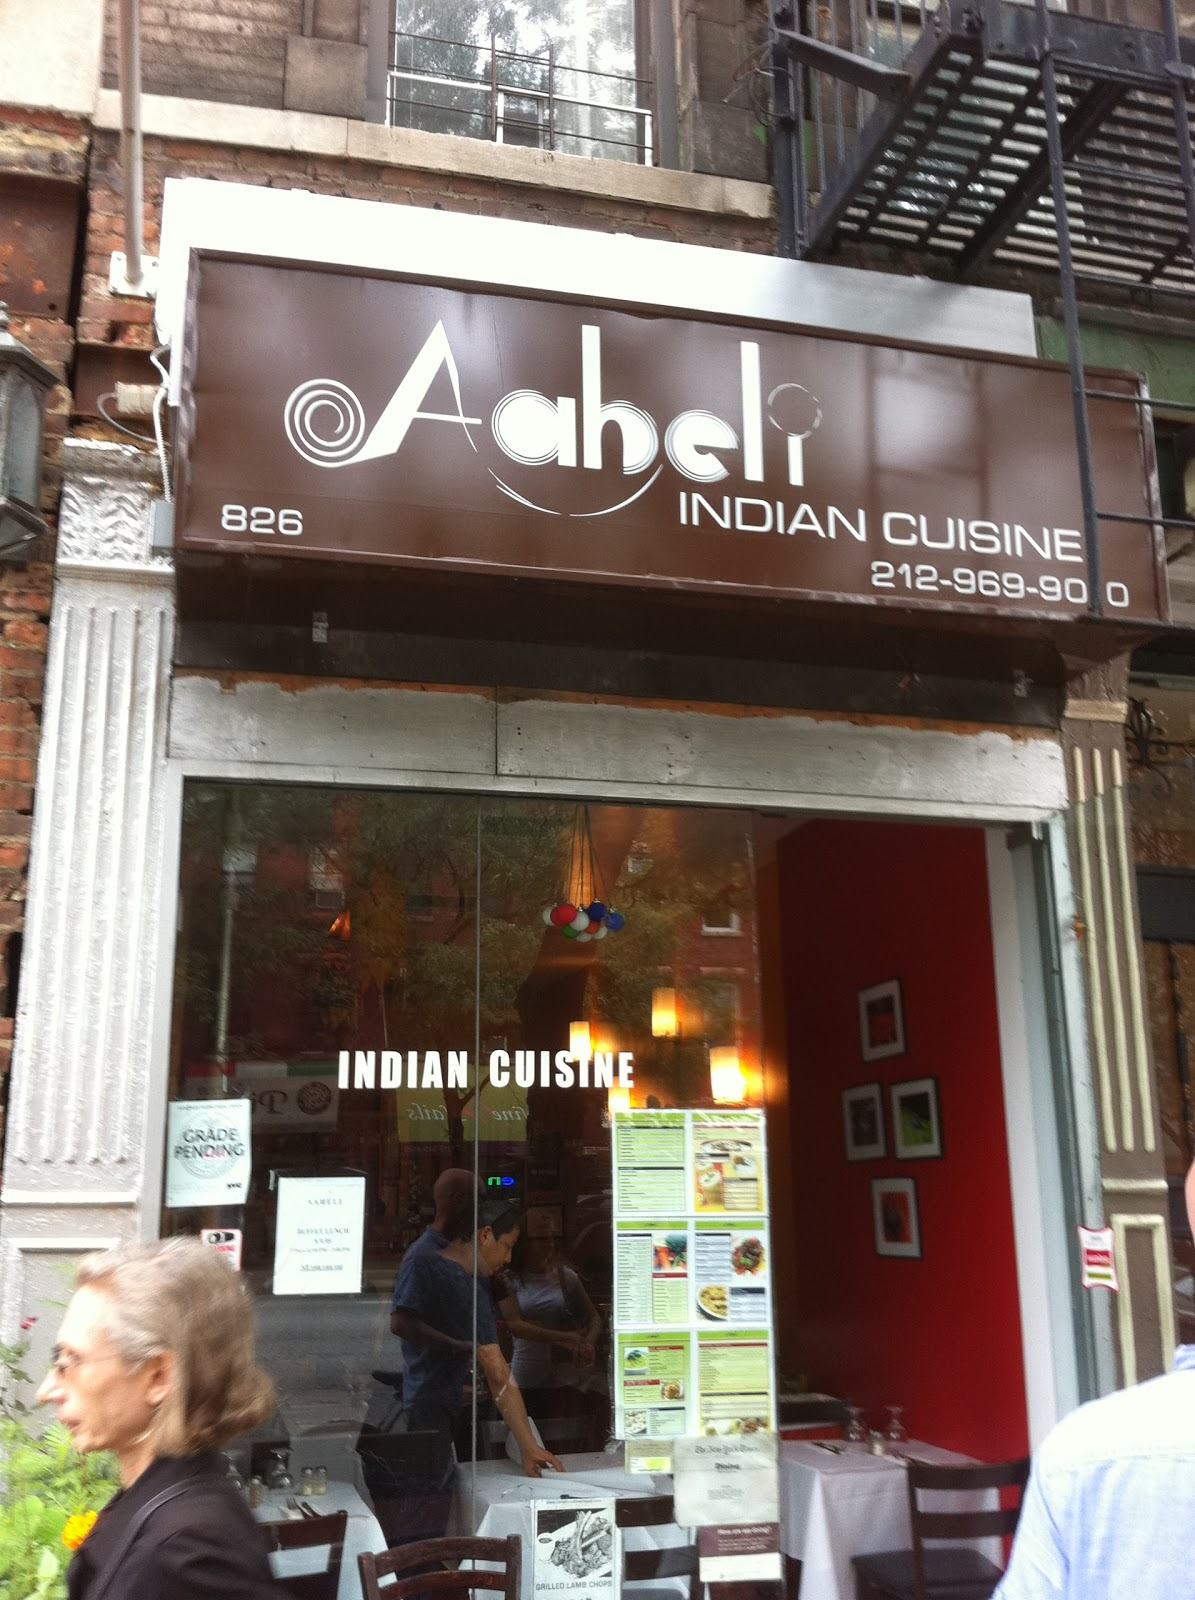 Ravi akula 39 s chronicles pleasant experience in a for Aaheli indian cuisine nyc